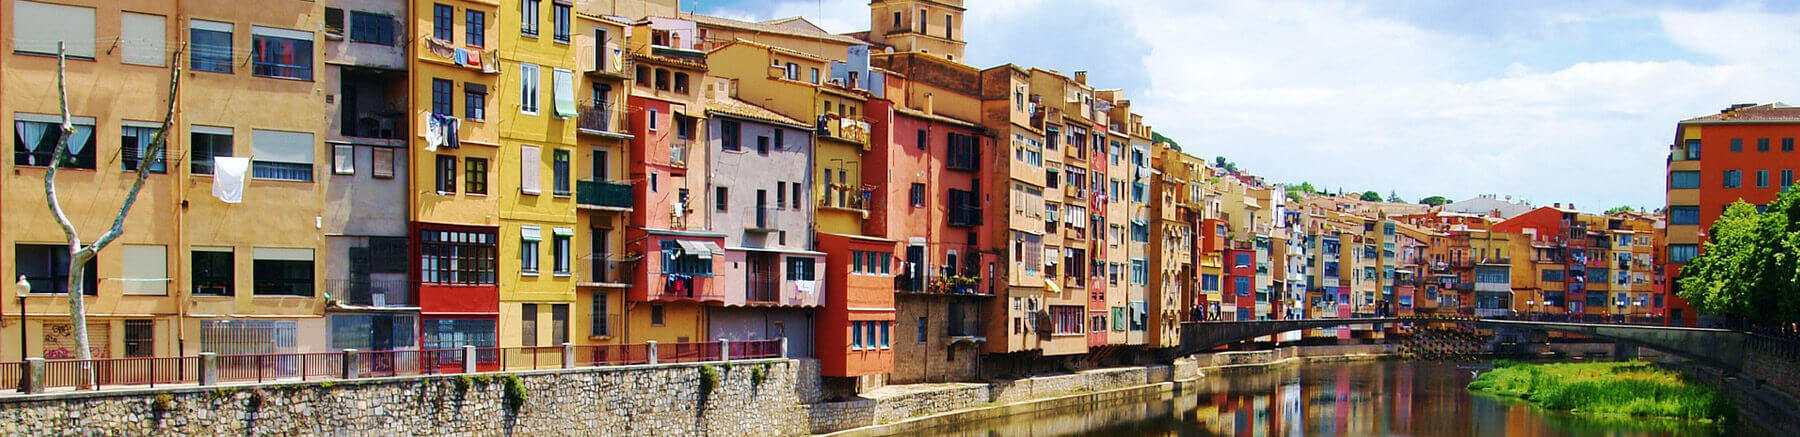 View of Girona and it's colourful houses on the bank of the river